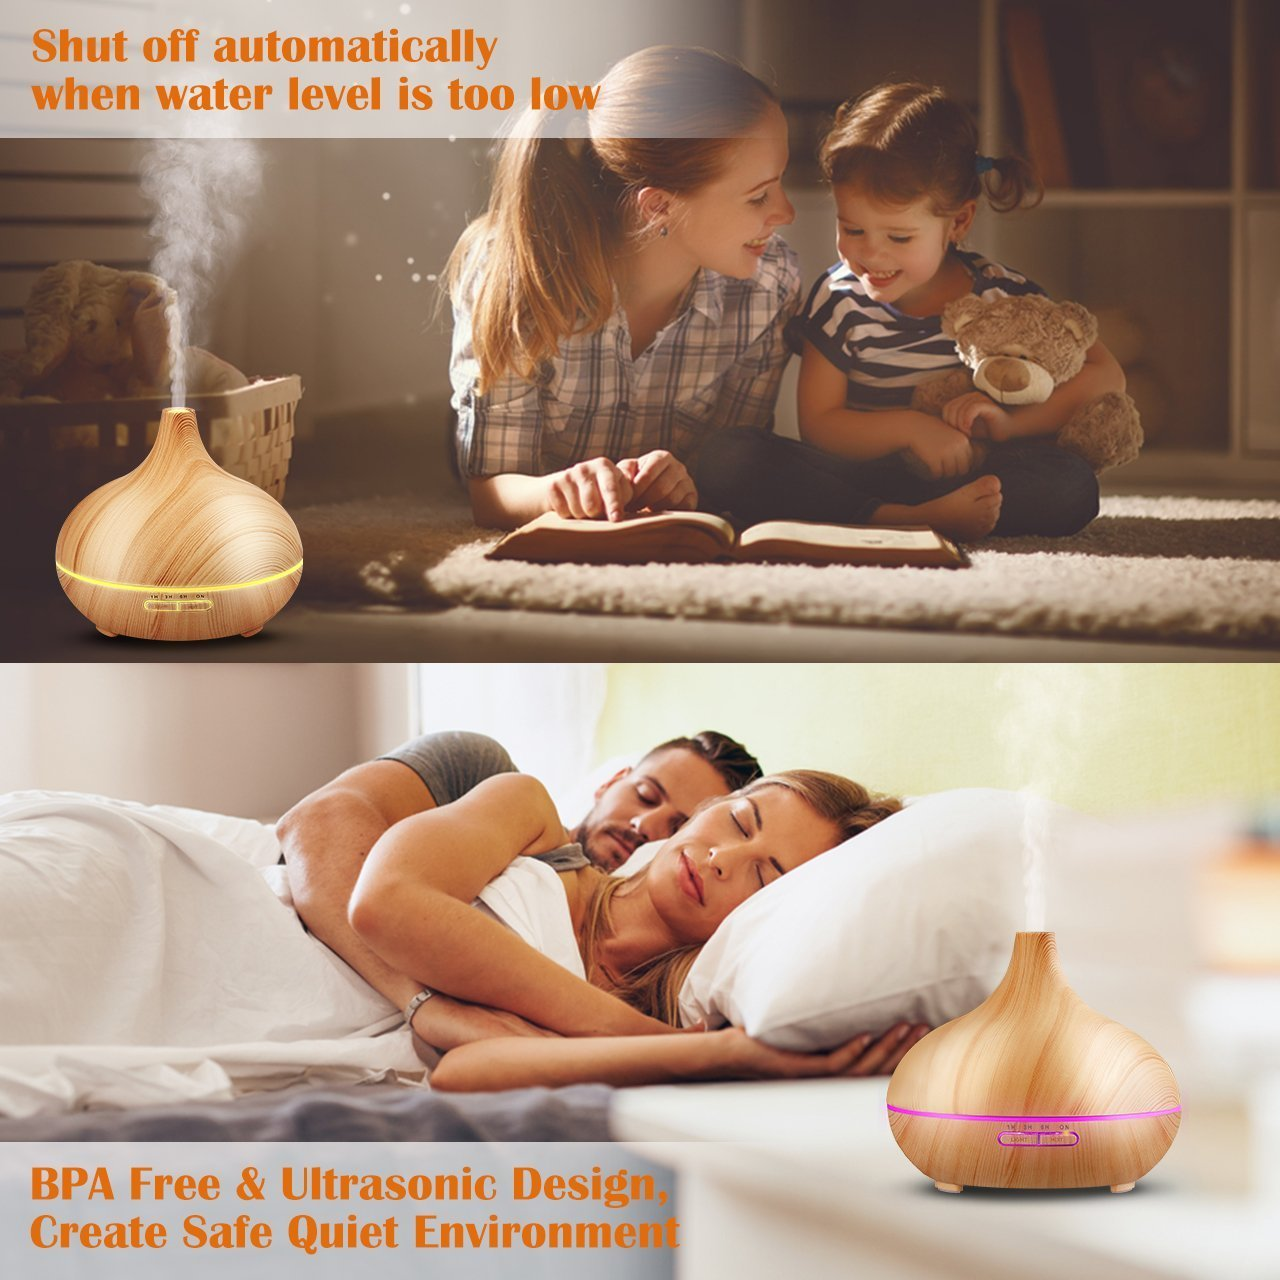 300ml Cool Mist Ultrasonic Humidifier, Aroma Essential Oil Diffuser, Waterless Auto Off, For Office Home Bedroom Living Room Study Yoga Spa (Wood Grain) by TuChang (Image #4)